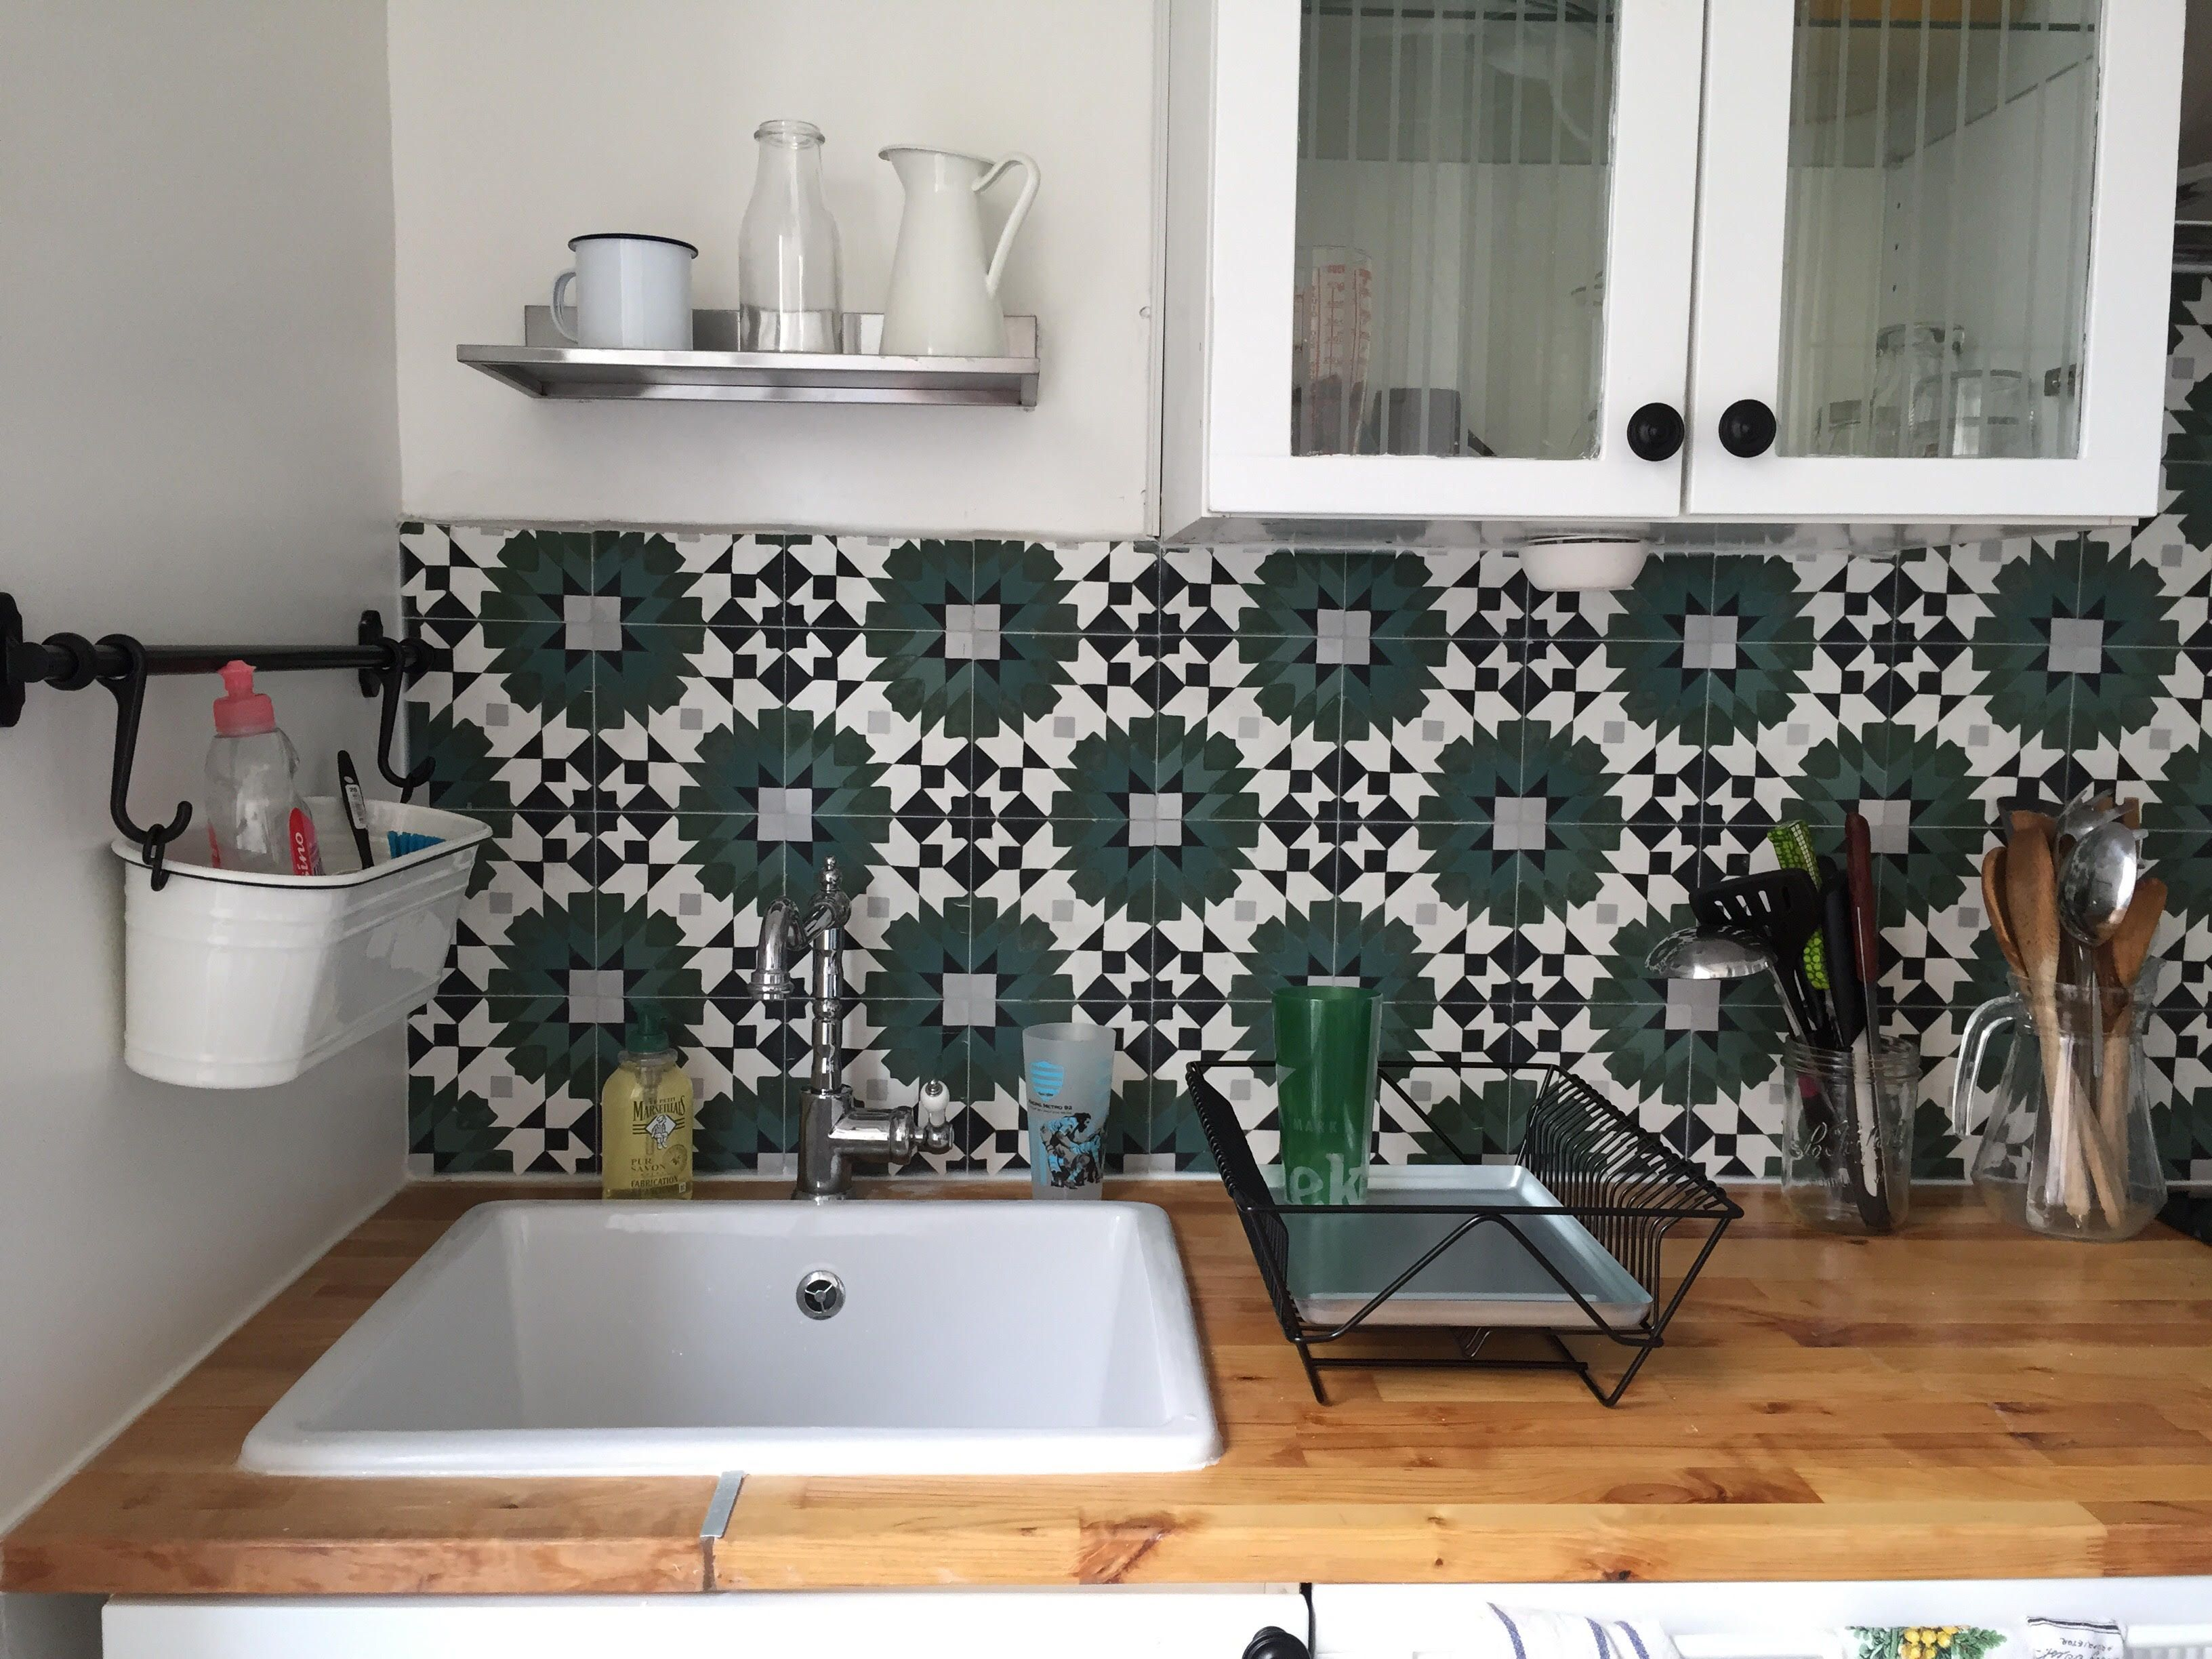 cr dence carreaux de ciment sur mesure cement tiles bathroom tile. Black Bedroom Furniture Sets. Home Design Ideas